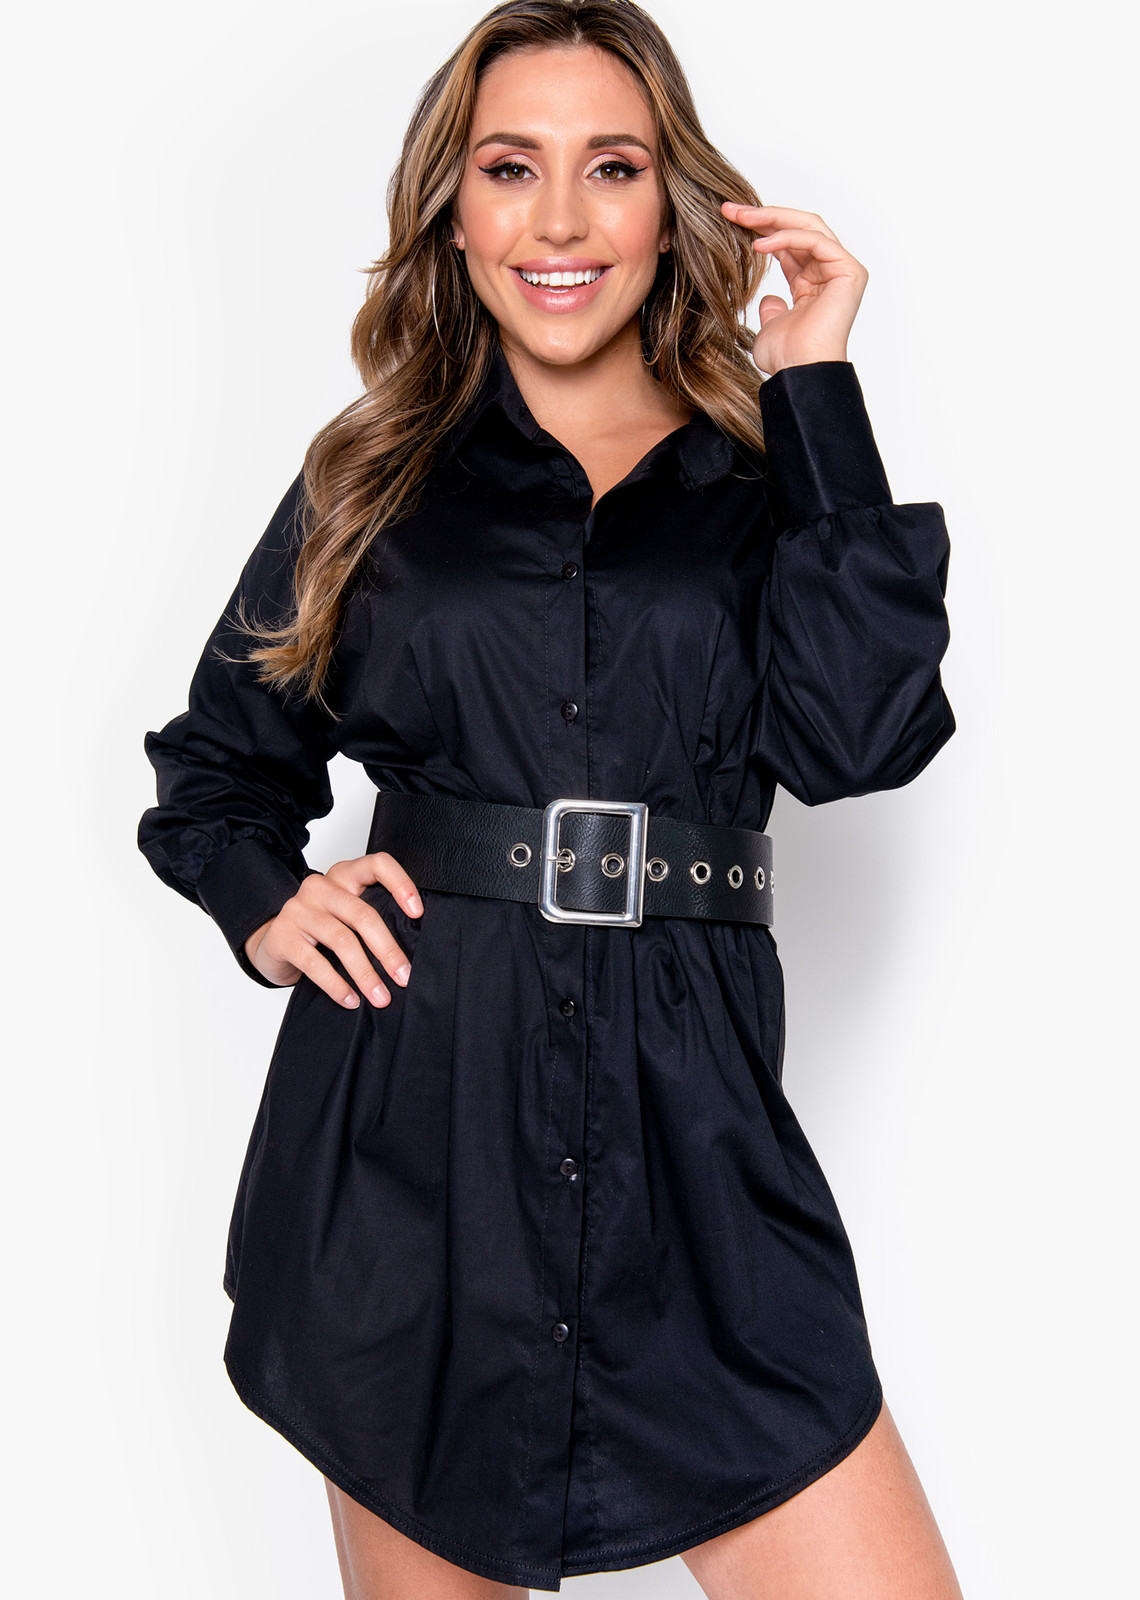 Blouse dress Mya black